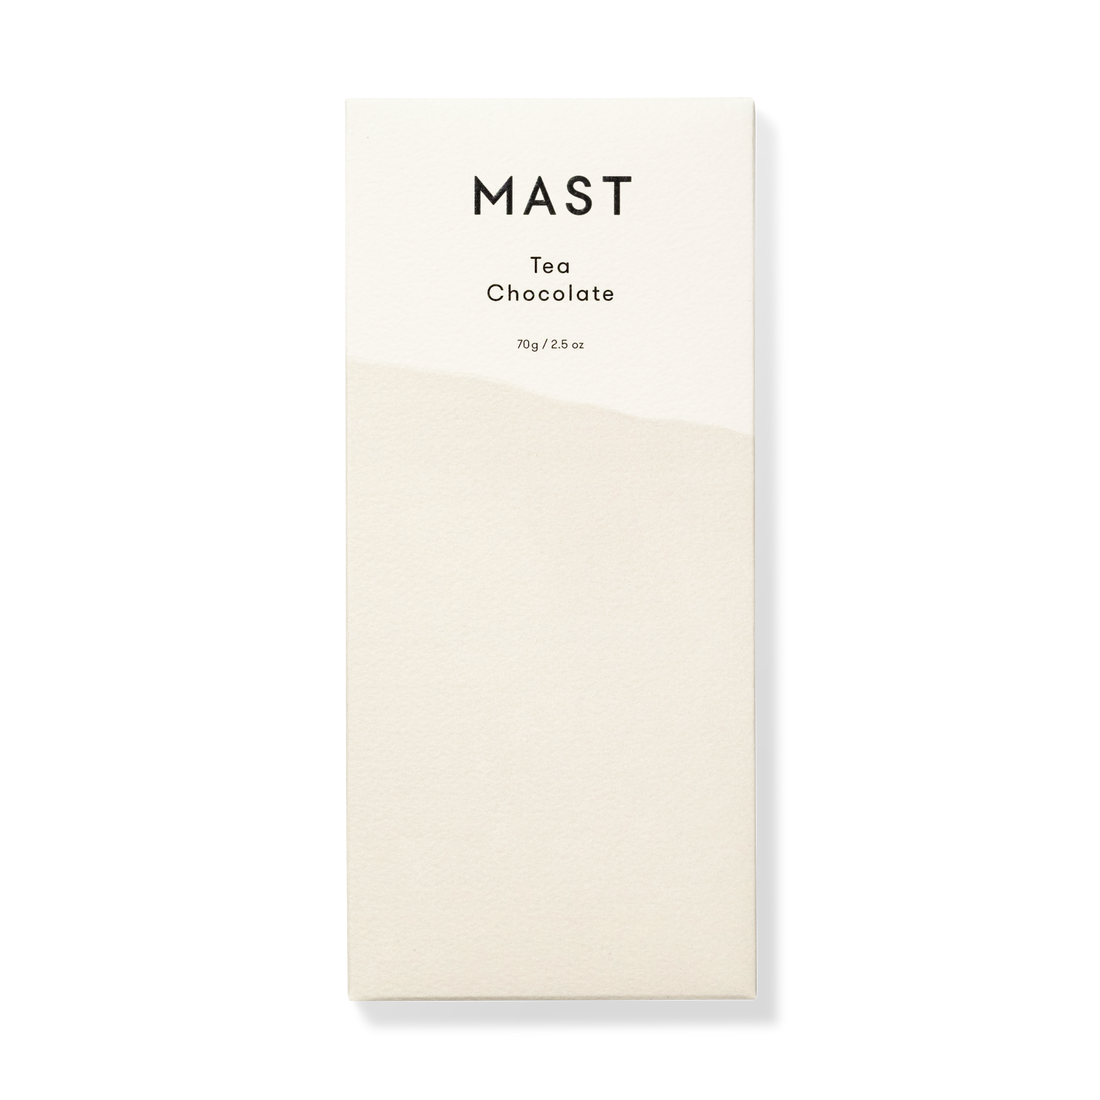 Mast: Tea Chocolate